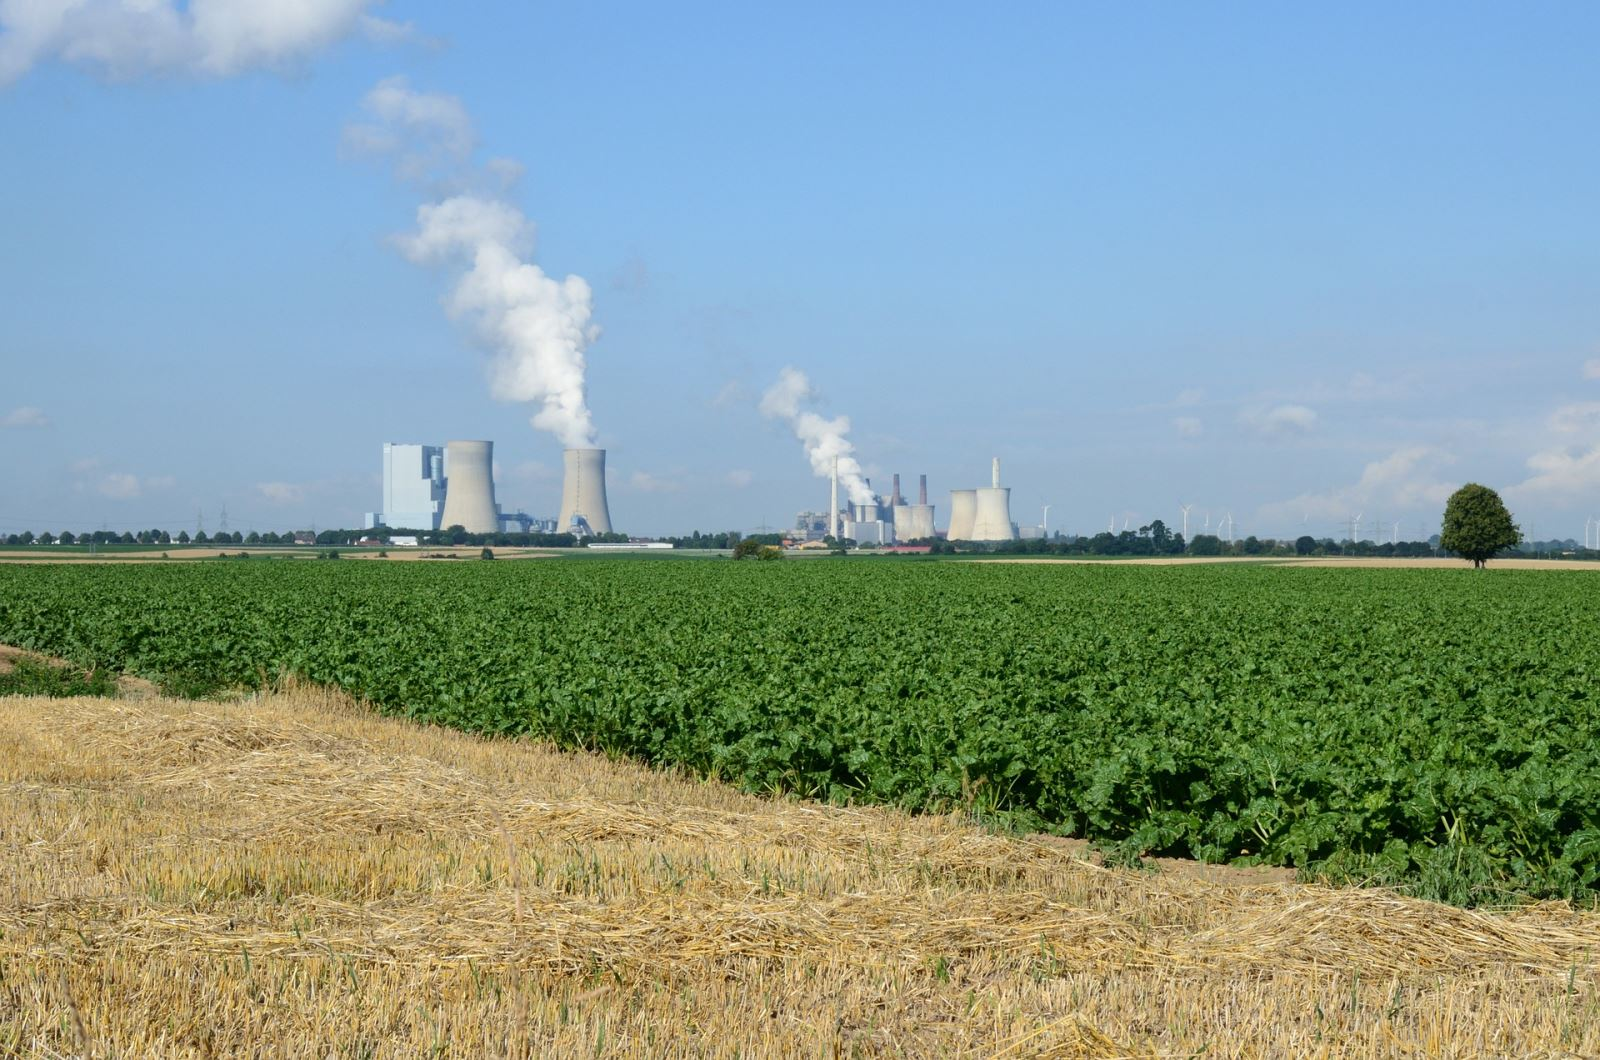 Crops with coal plant in the distance